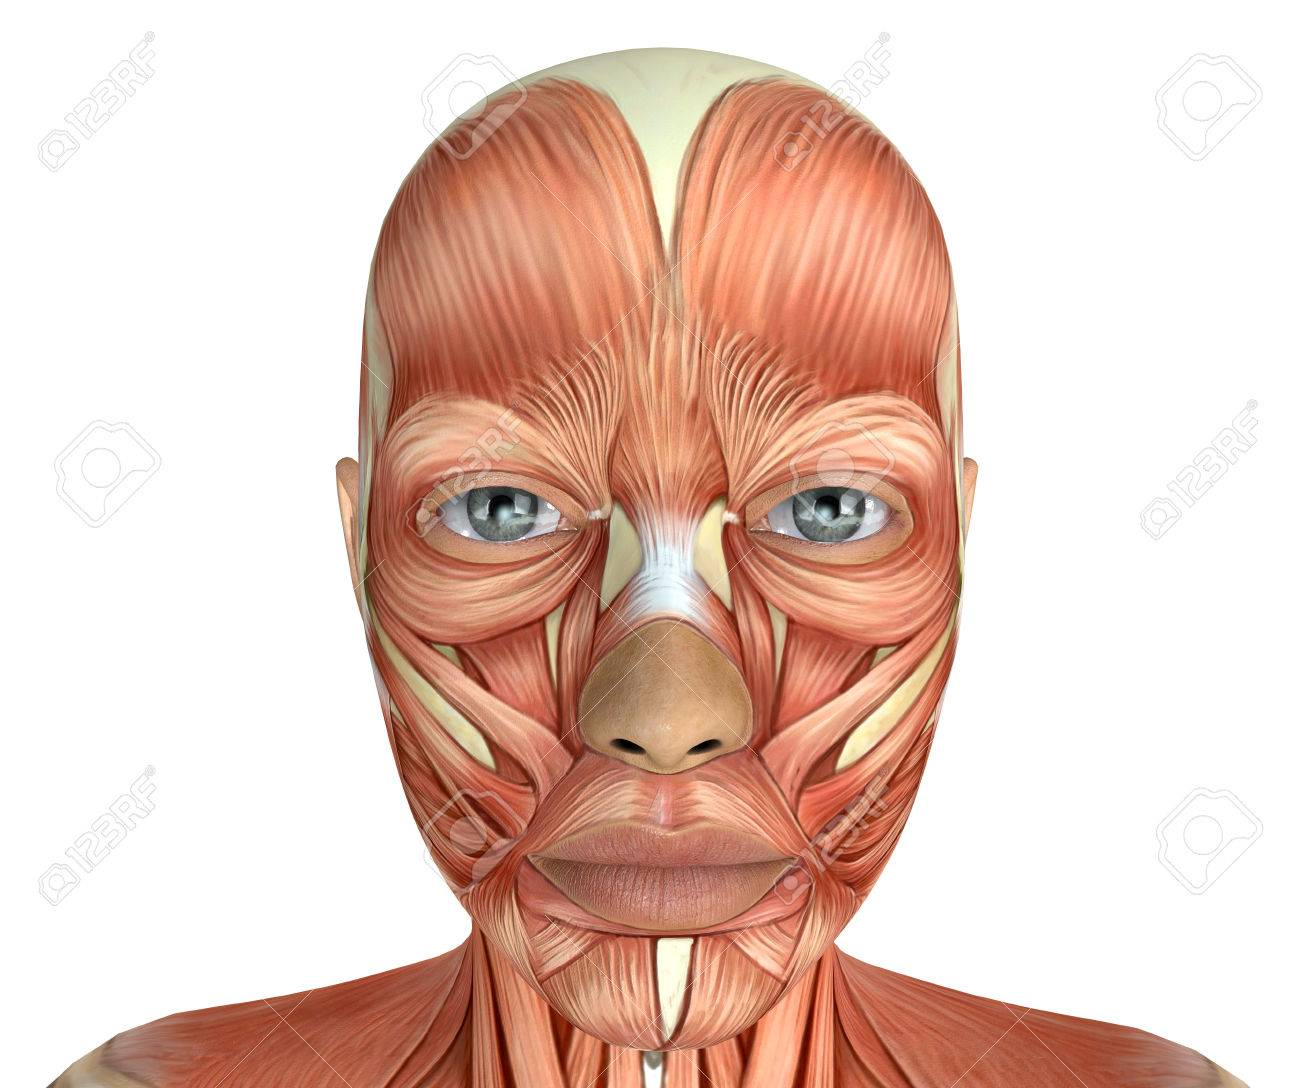 Female Face Muscles Anatomy 3d Rendered Illustration Stock Photo ...